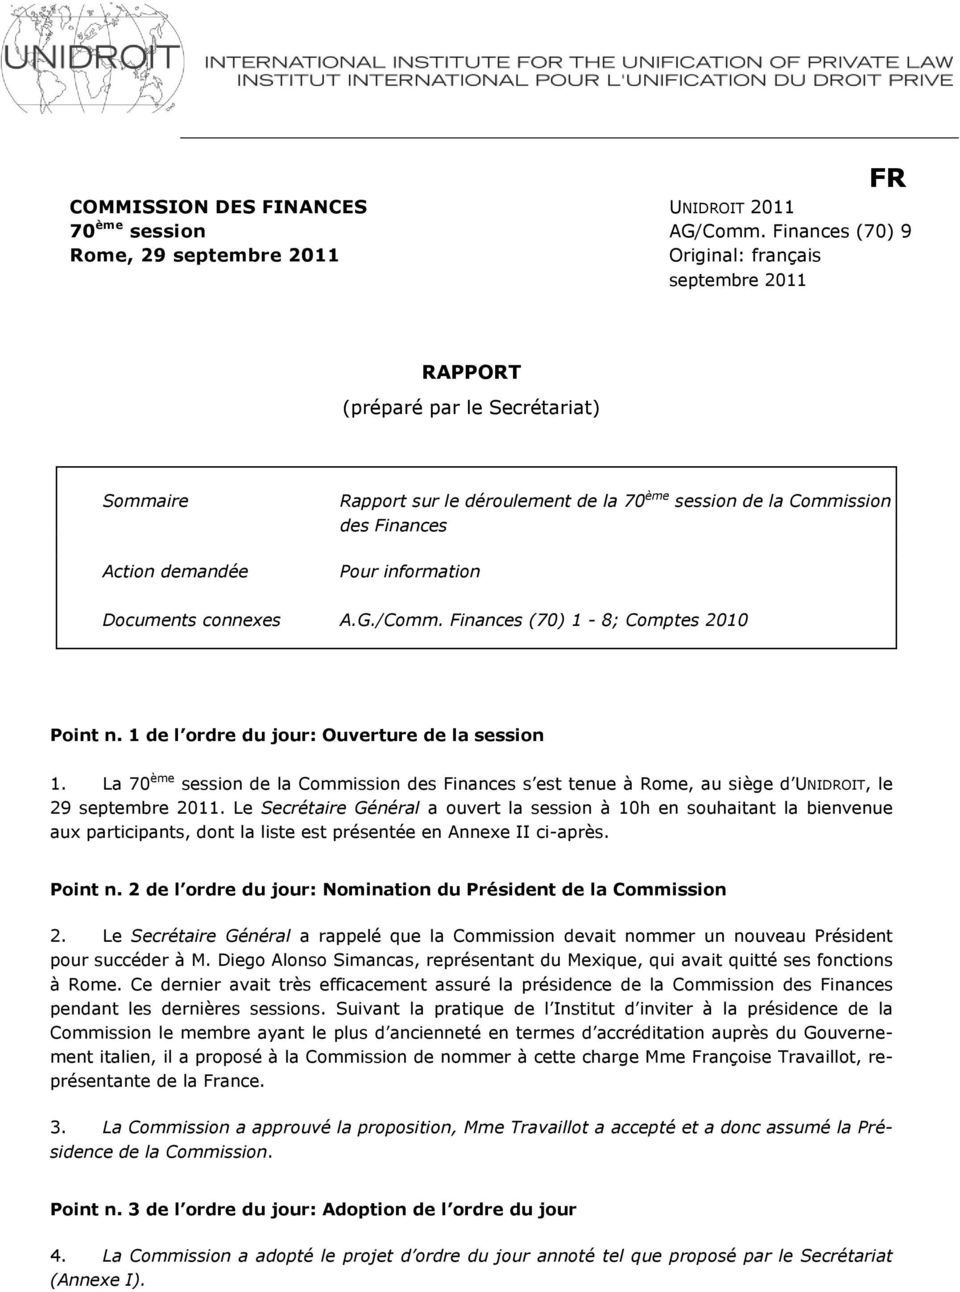 Commission des Finances Pour information Documents connexes A.G./Comm. Finances (70) 1-8; Comptes 2010 Point n. 1 de l ordre du jour: Ouverture de la session 1.